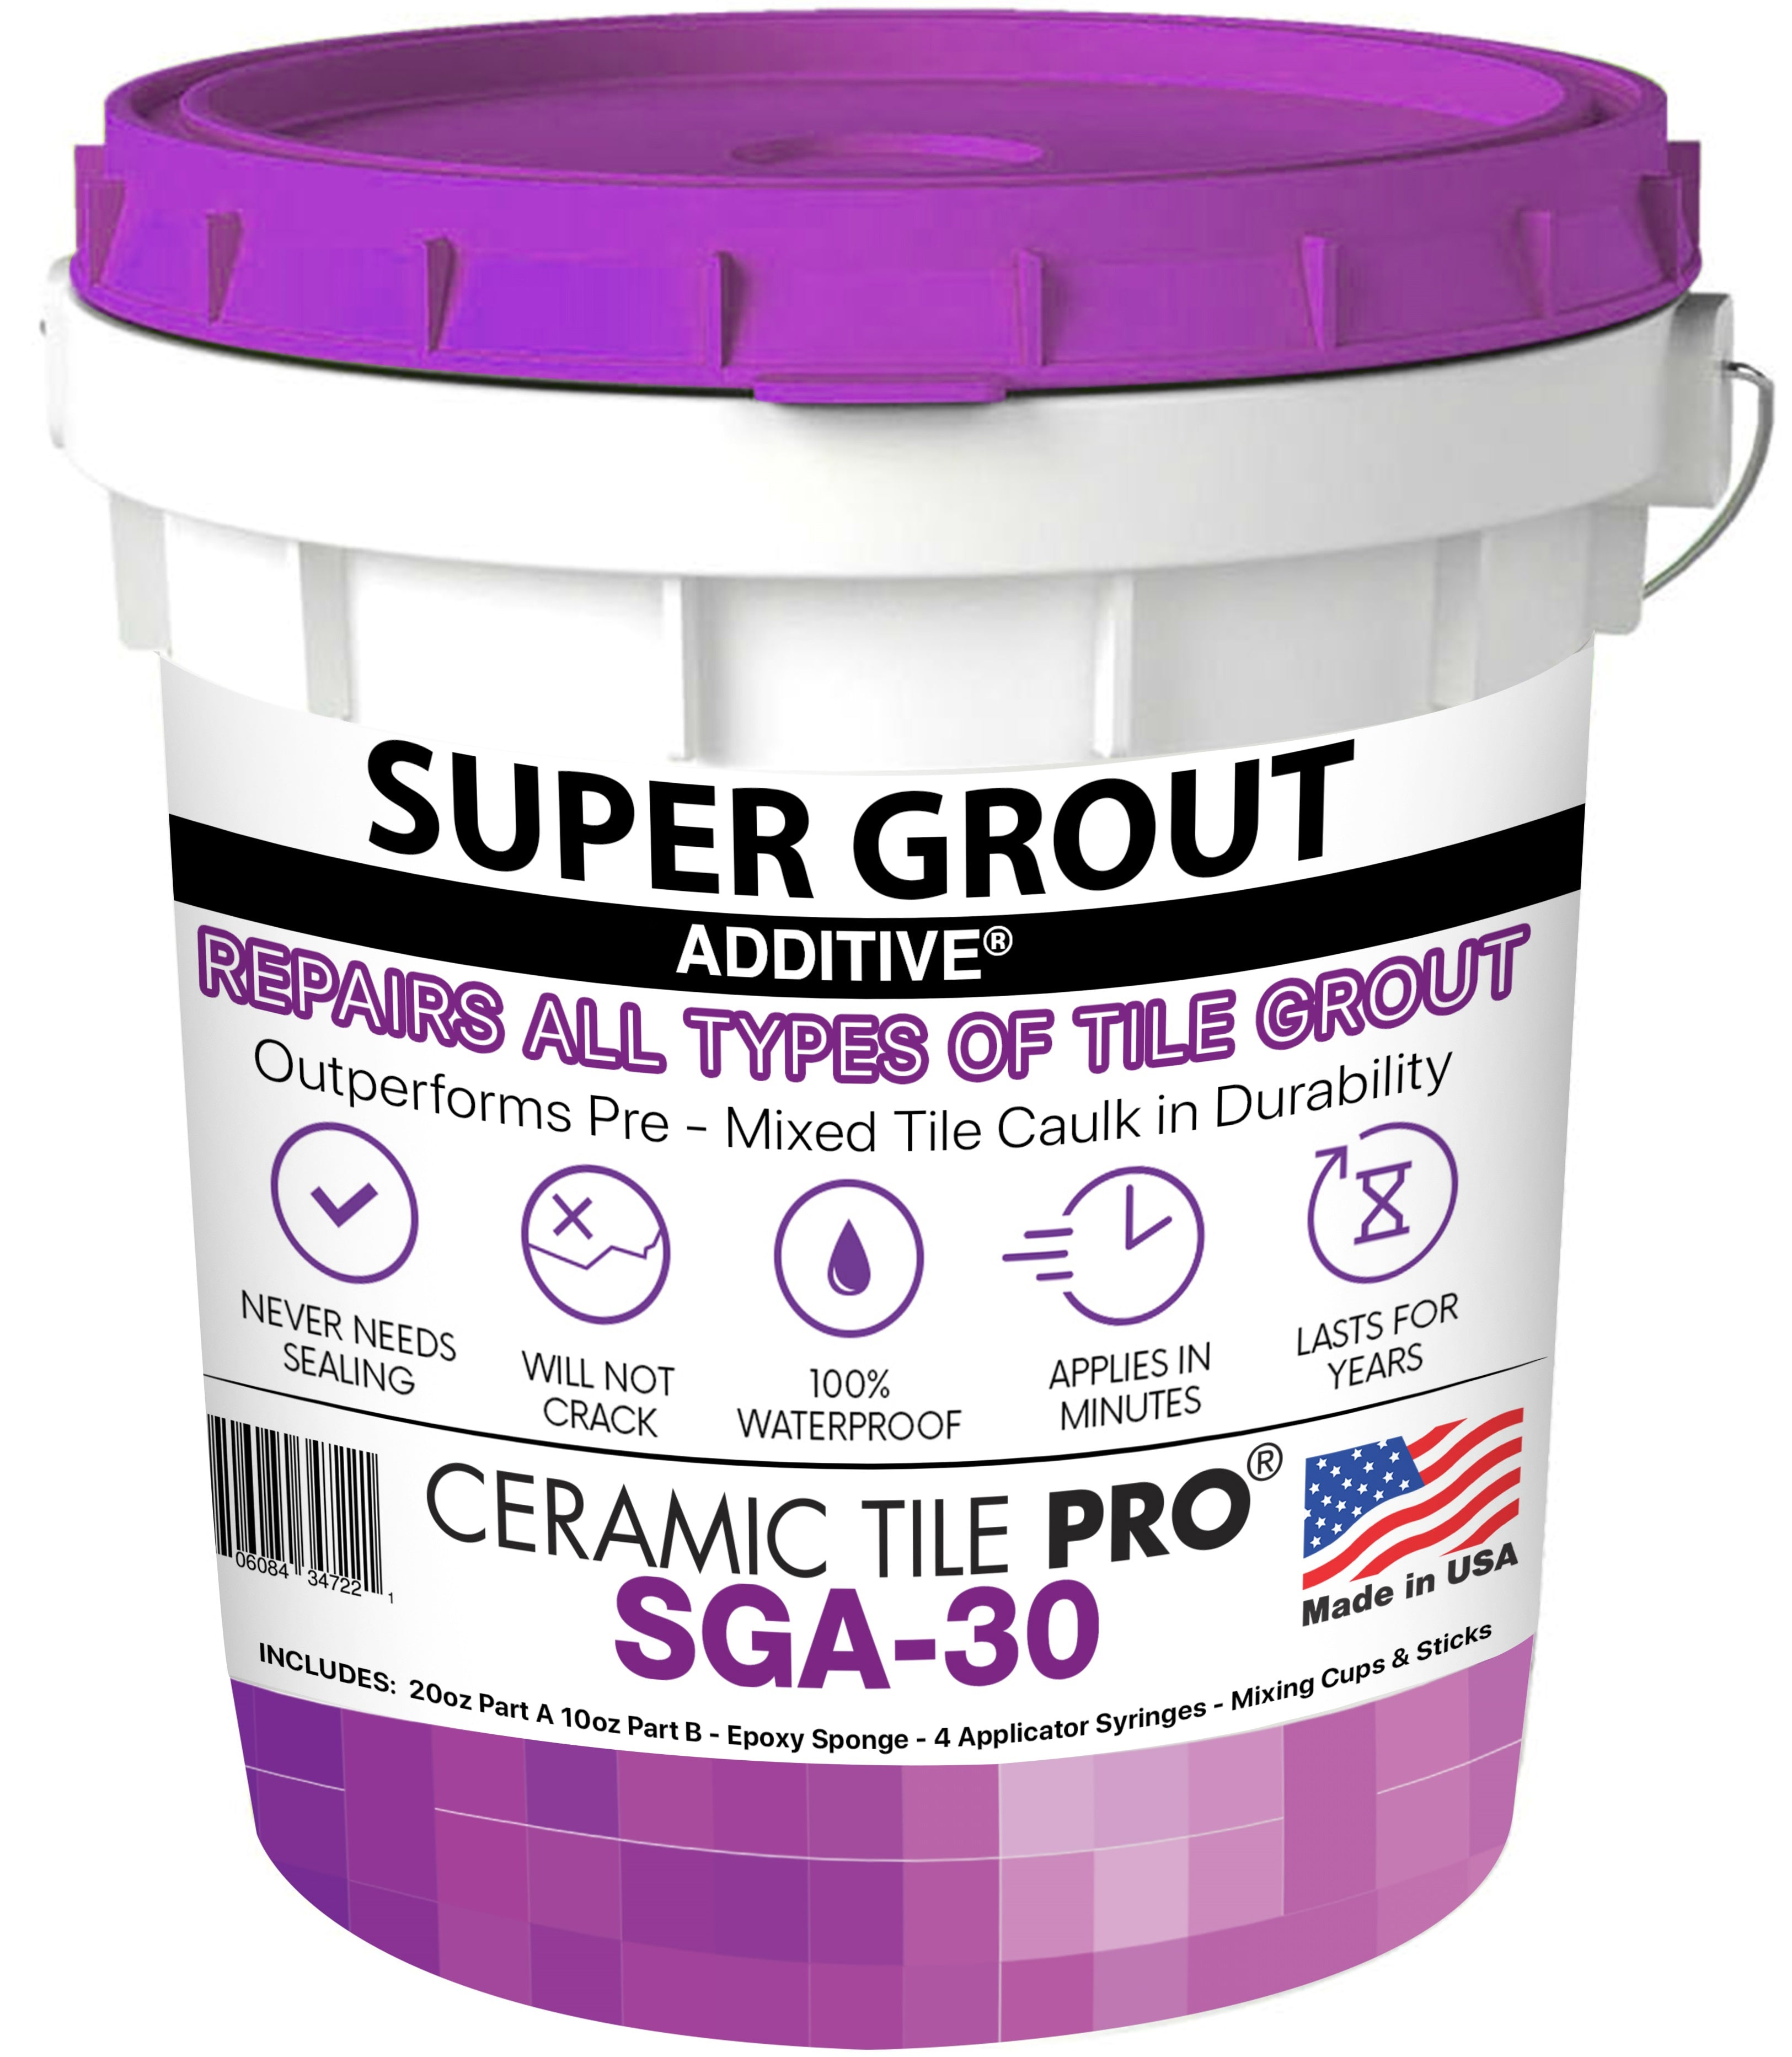 Super Grout Additive SGA 30 with epoxy sponge